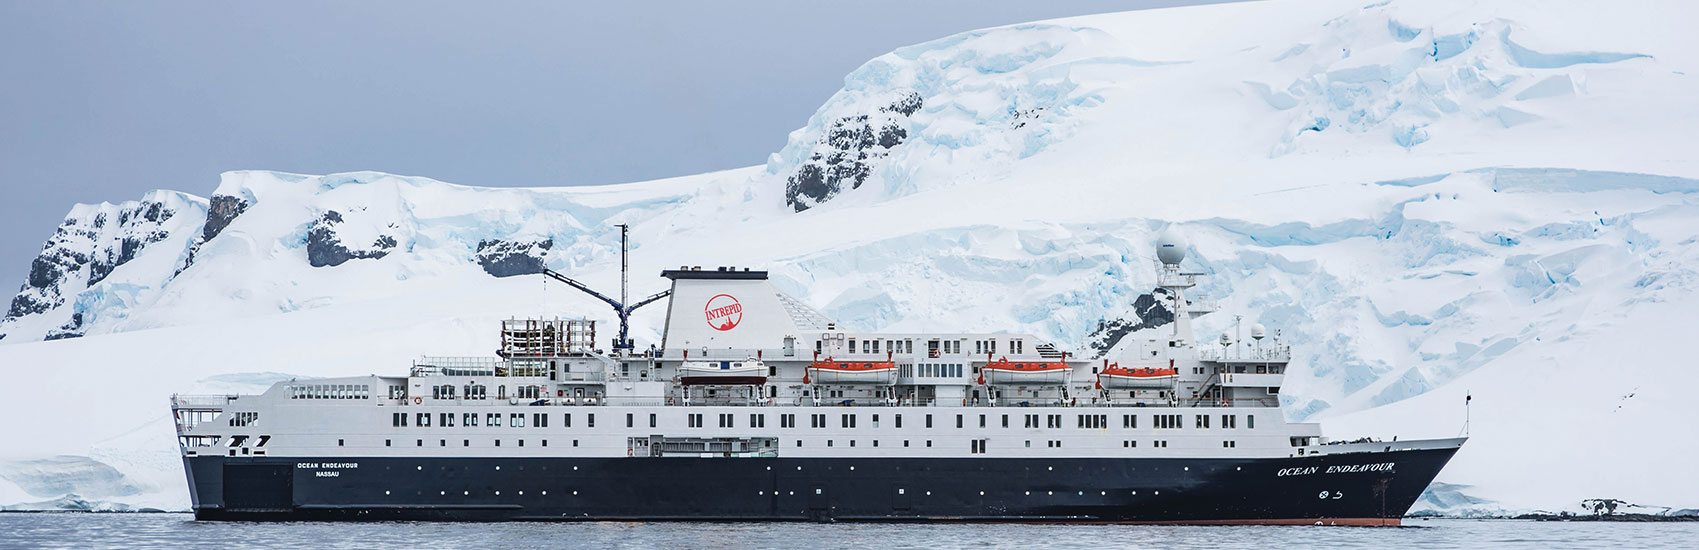 Antarctic Savings with Intrepid Travel 0